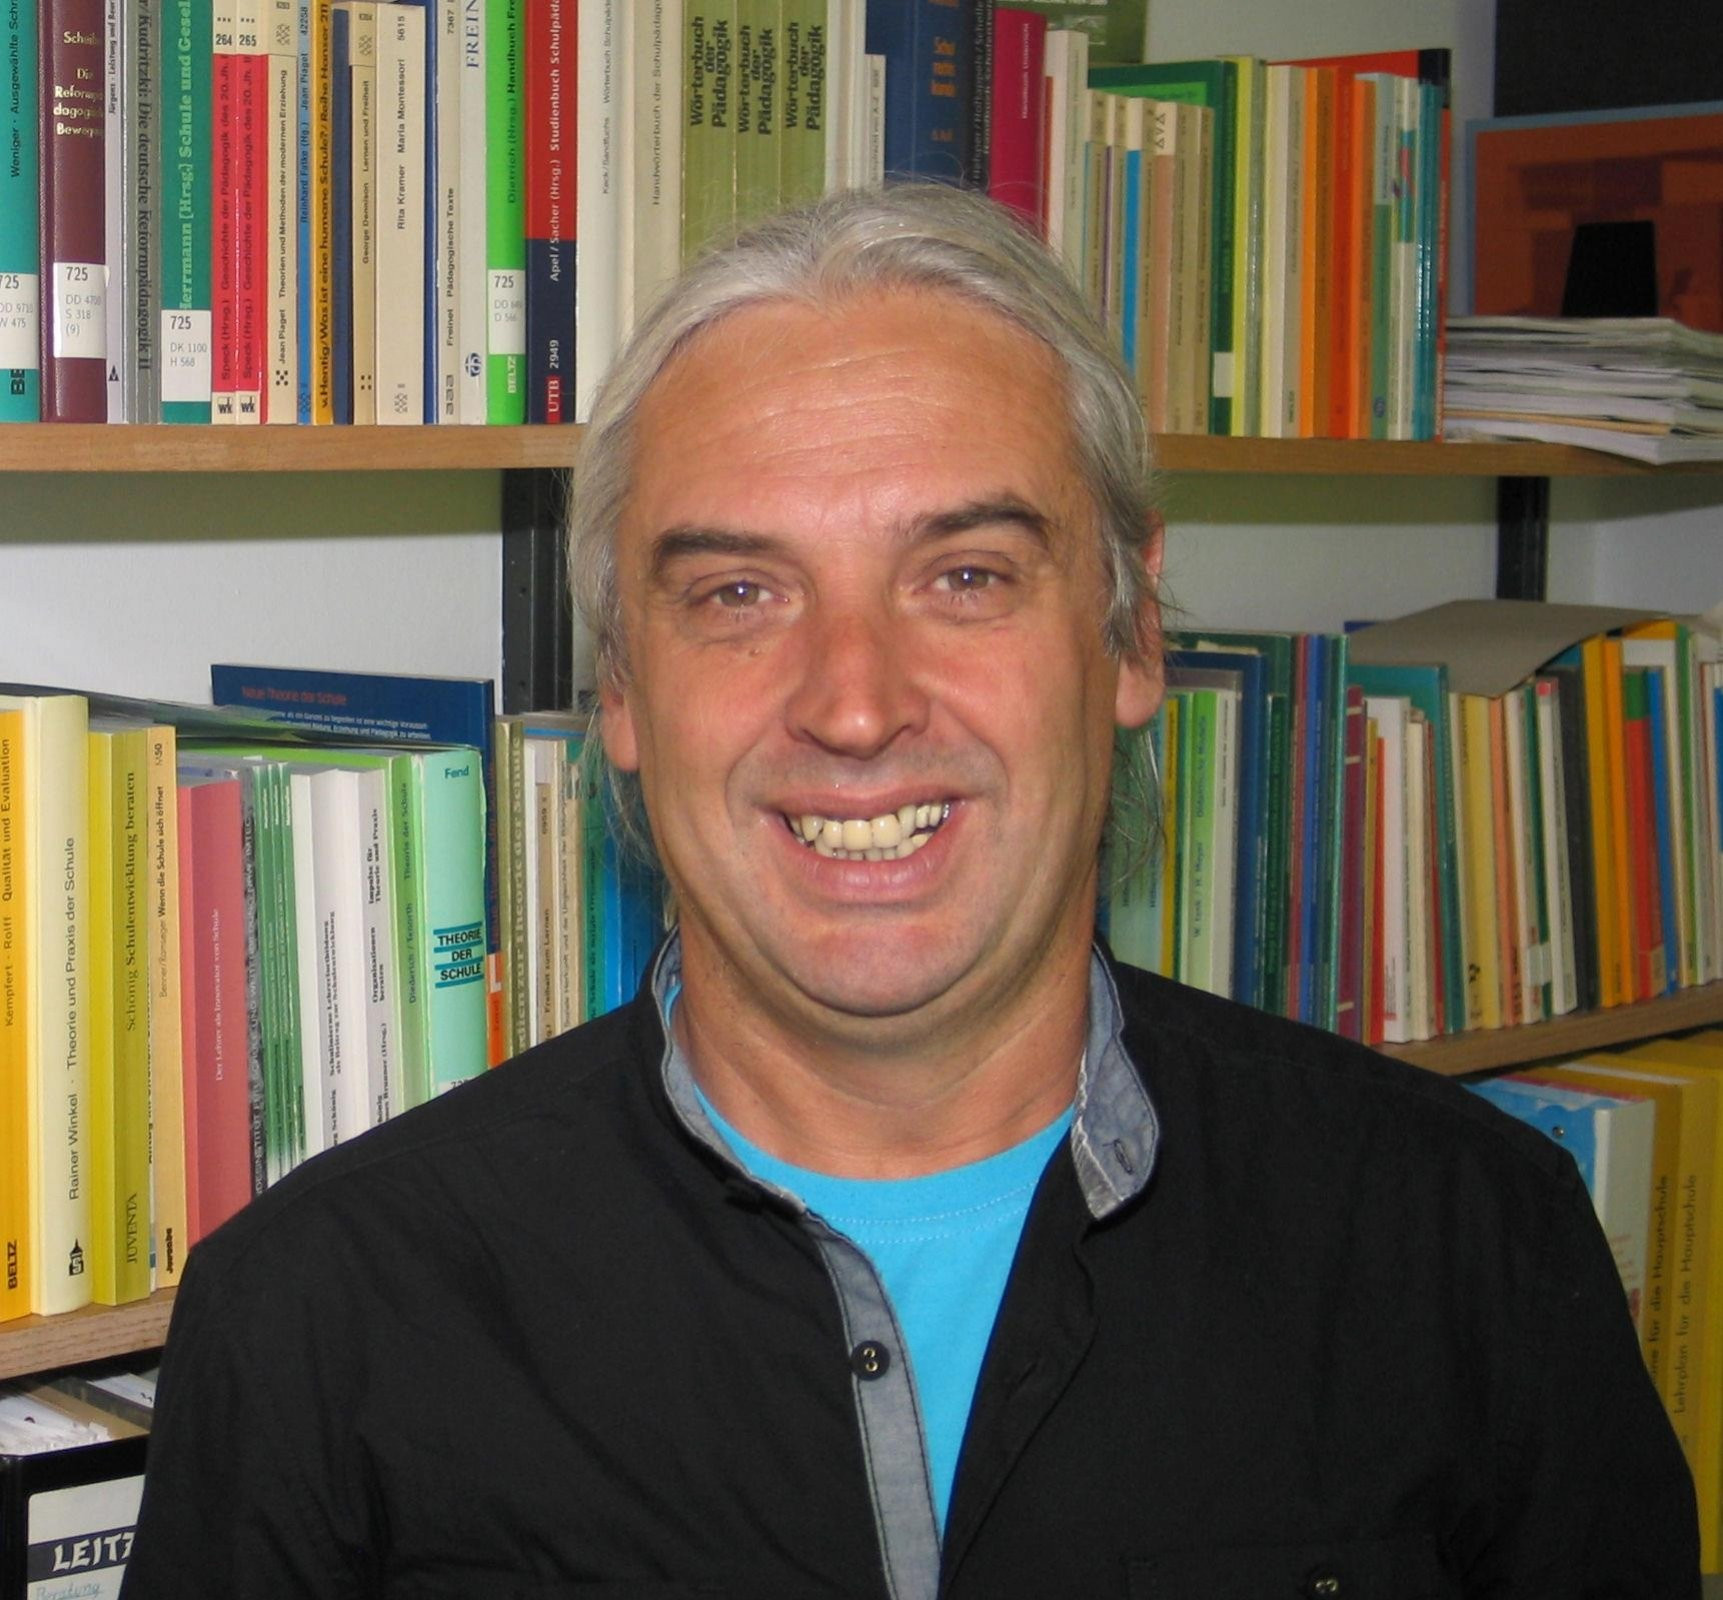 Author - Krassimir  Stojanov